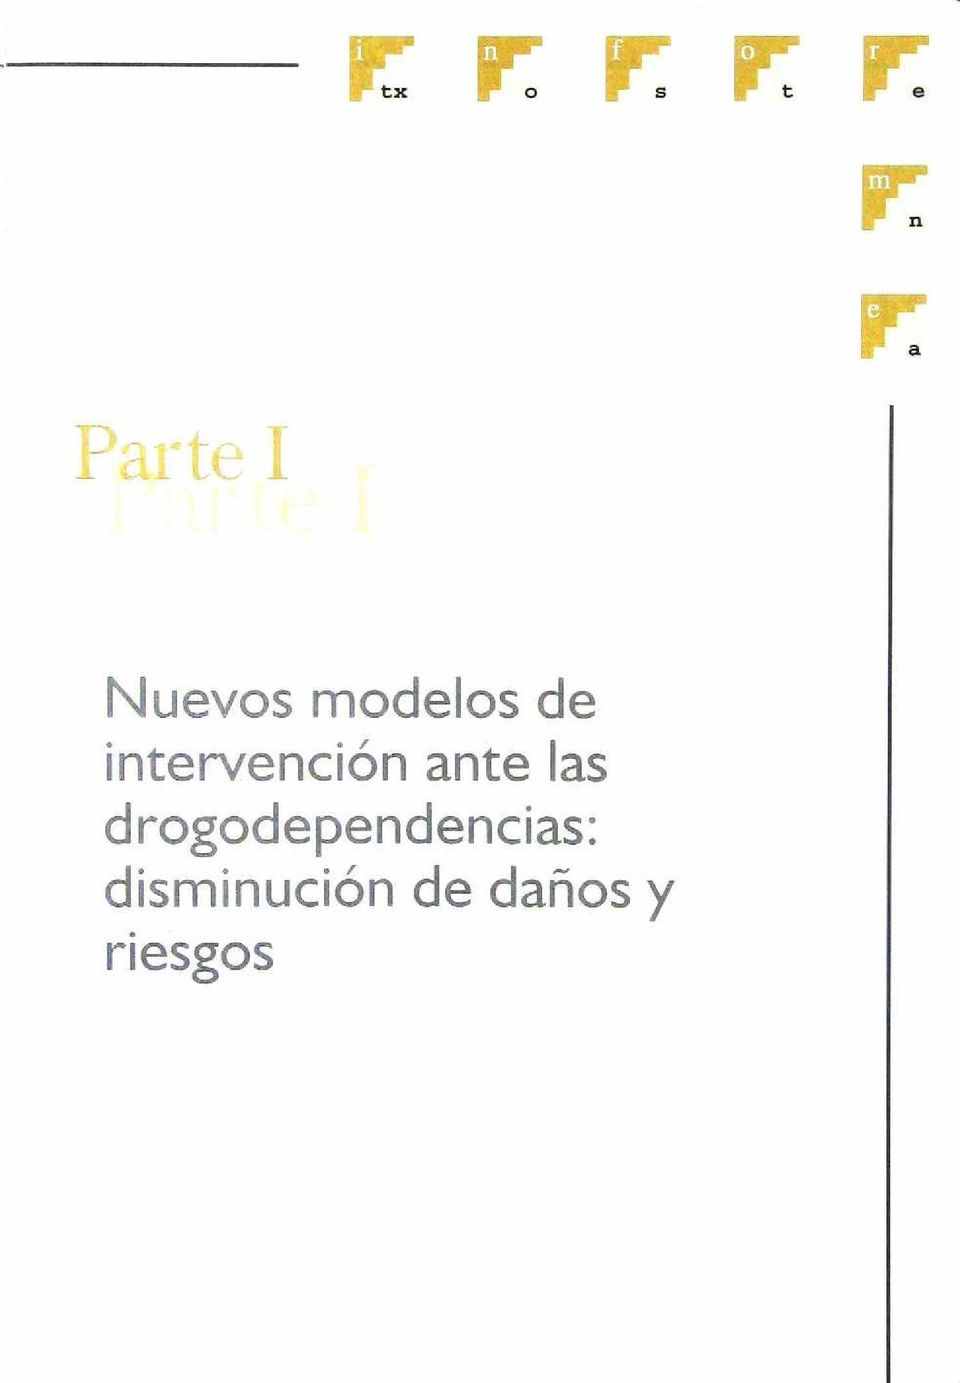 drogodependencias: